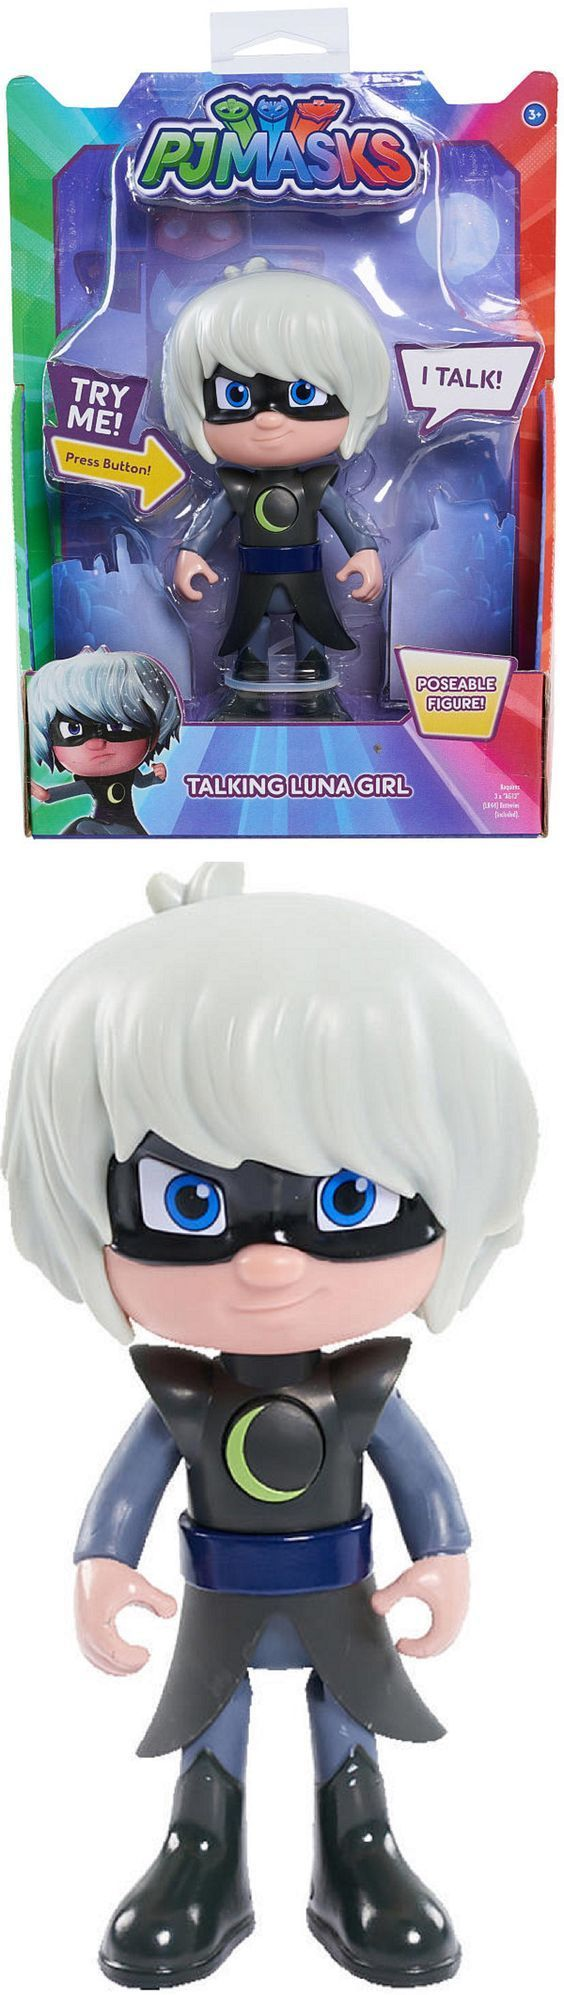 Christmas 2017 gift for our beautiful granddaughter and handsome grandson.  PJ Masks 6 inch Poseable Talking Luna Girl.  The kids love this along with the talking Owelette, Gekko, Cat Boy, Romeo, and Night Ninja we also got them for Christmas.